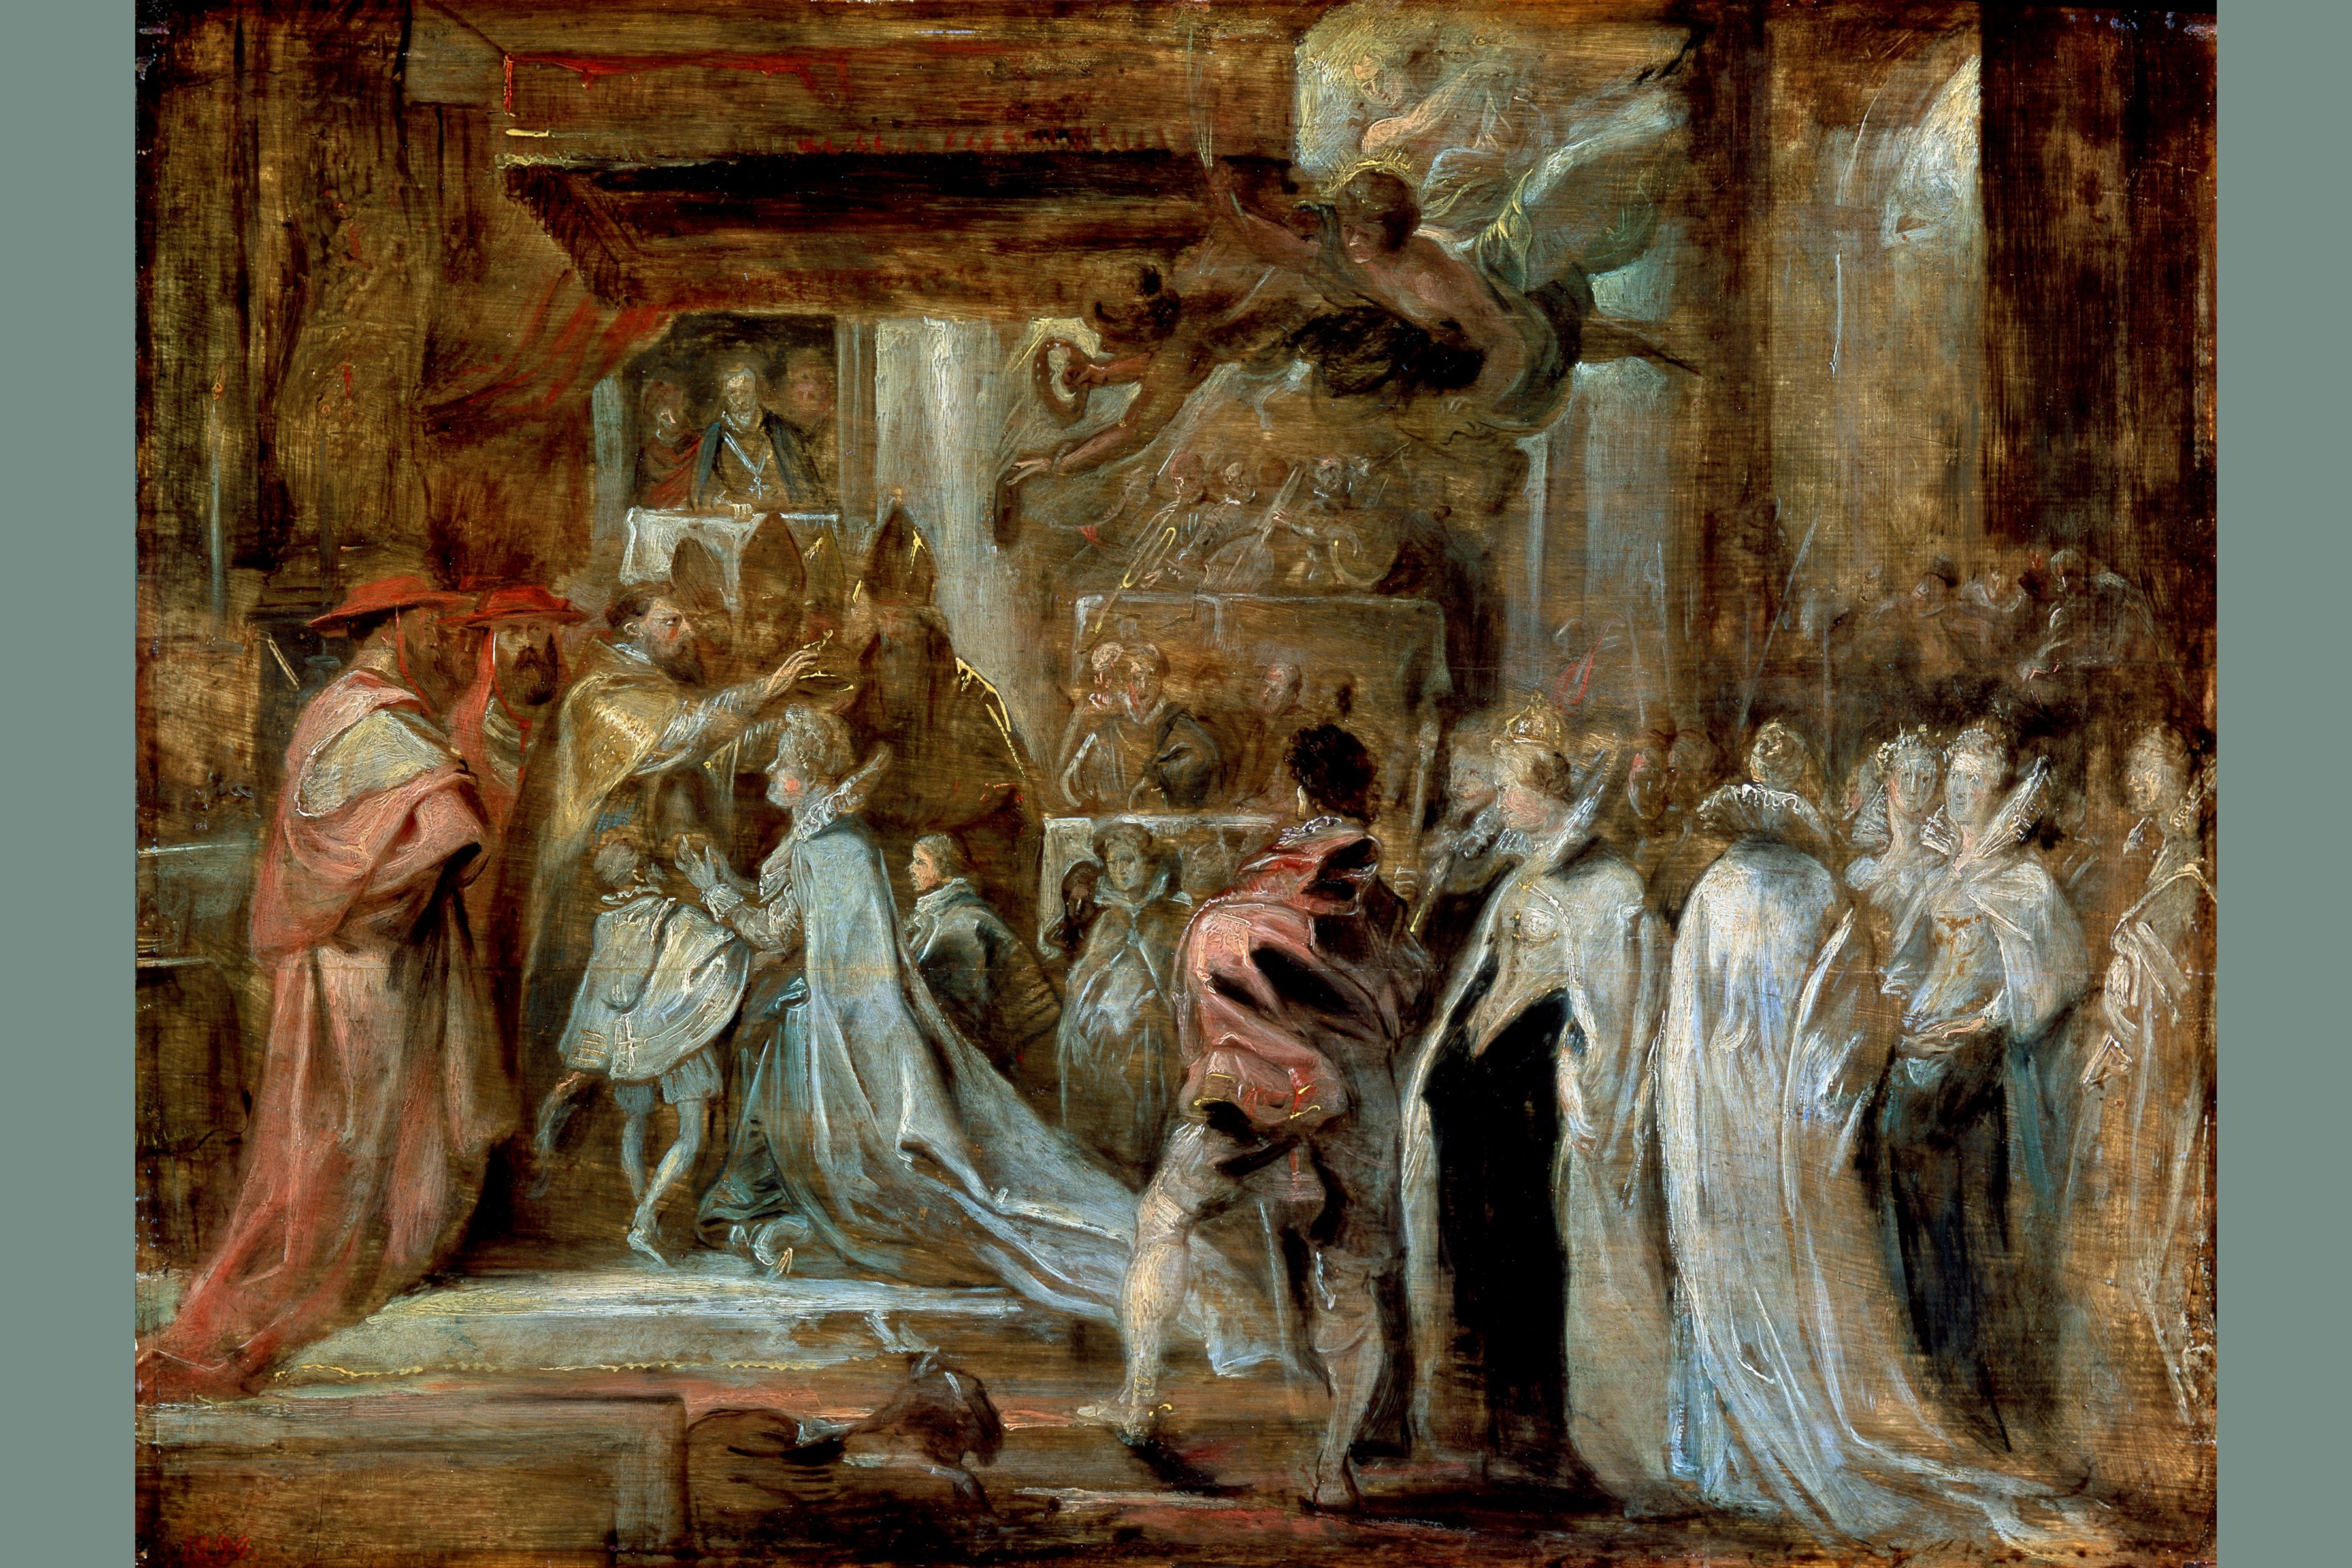 Painting depicting the Coronation of Marie de' Medici